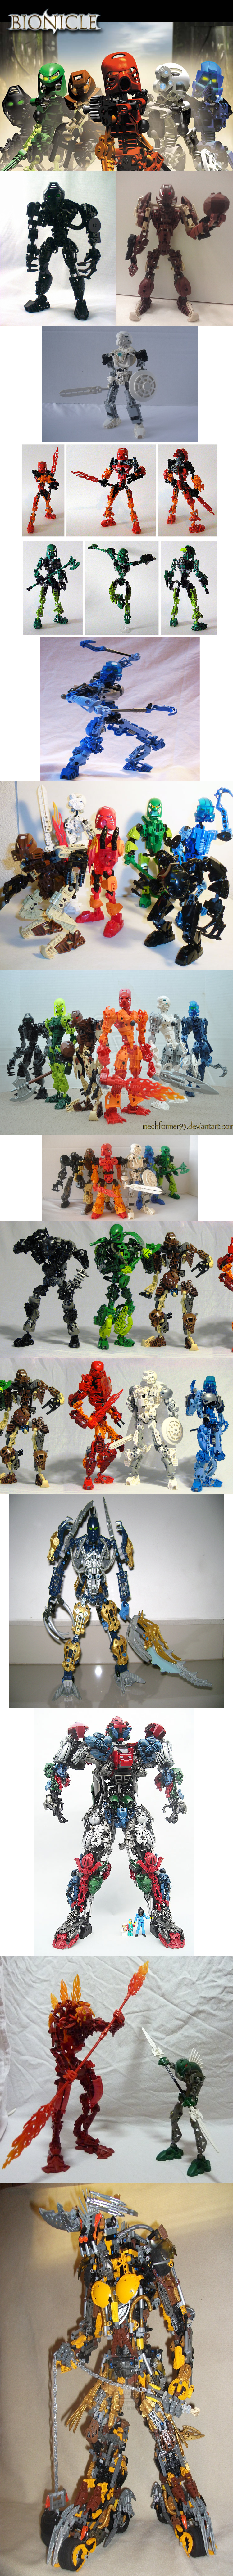 Bionicle-related Creations part 3. I'm a little low on ideas for comps. What would you want to see in a compilation?.. Lets all admit. Kopaka was the biggest badass of the Bionicle universe